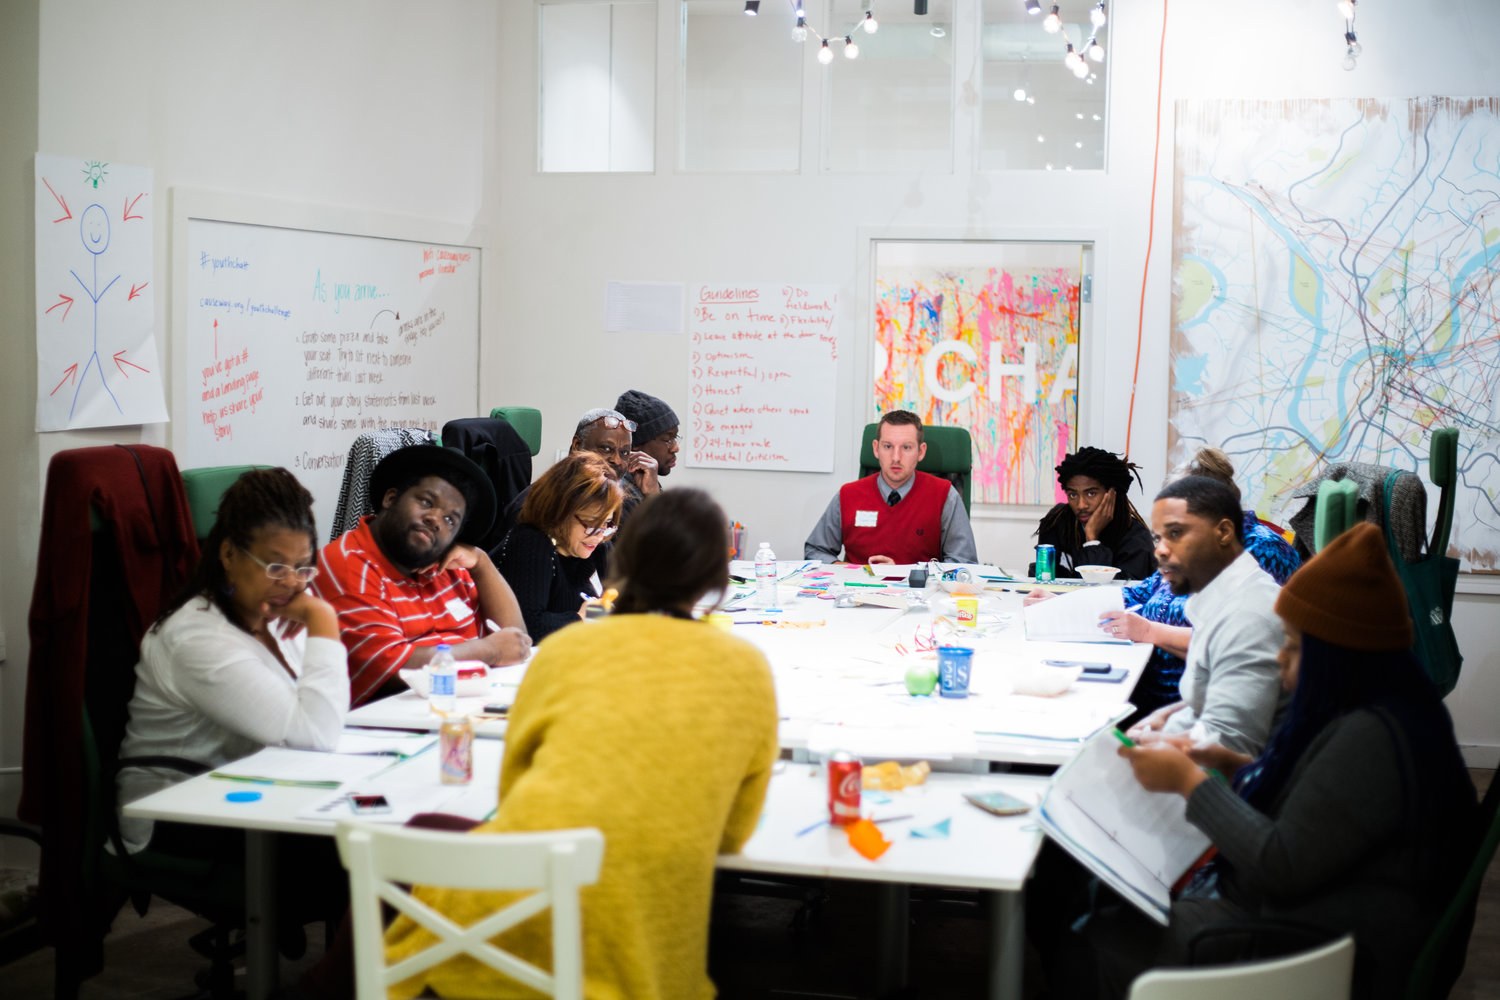 Wide shot of a group of Causeway participants gathered at a conference table.